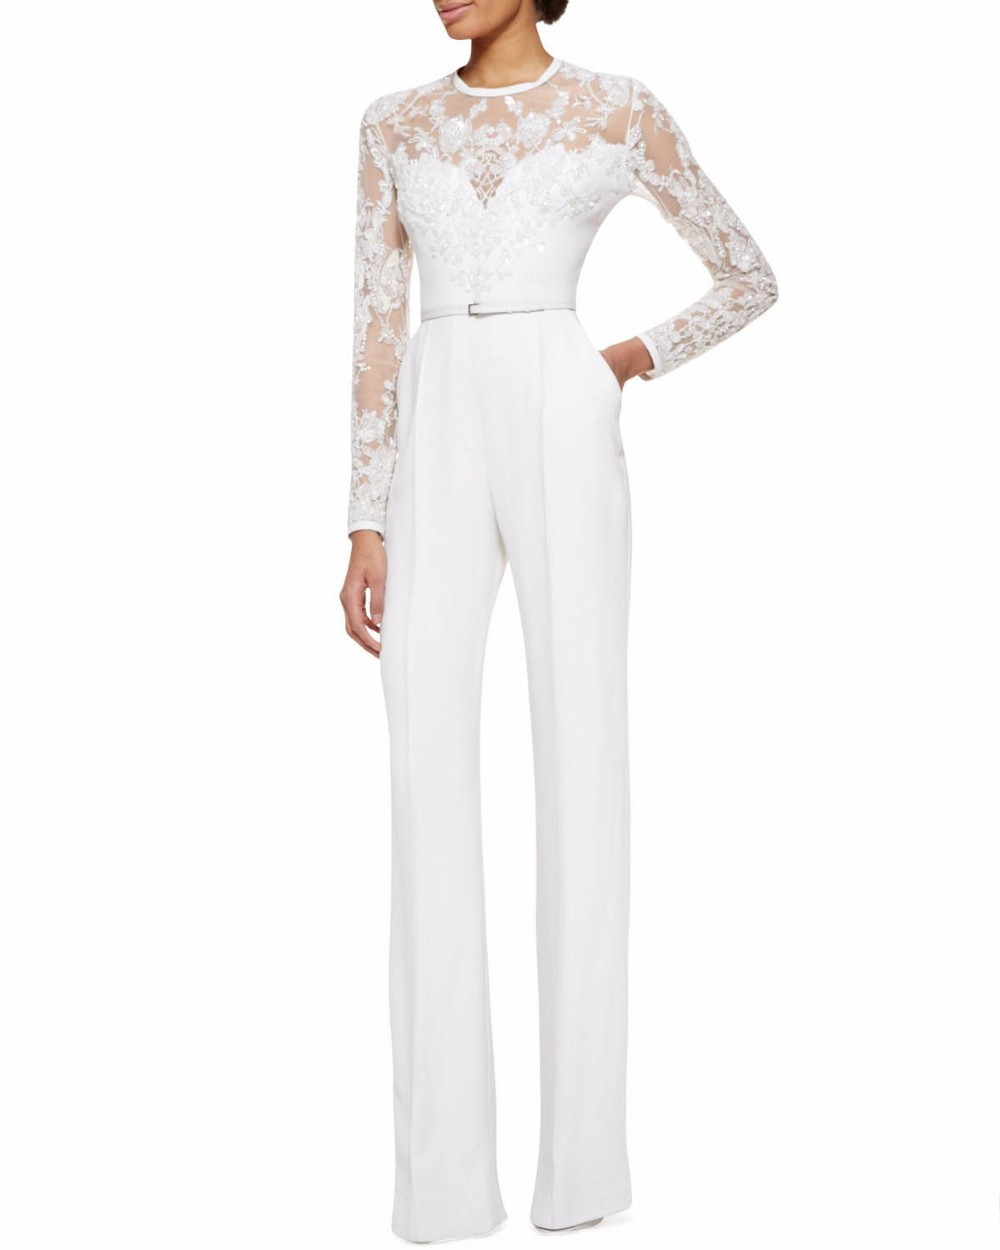 2016 White Mother Of The Bride Pant Suits Jumpsuit With